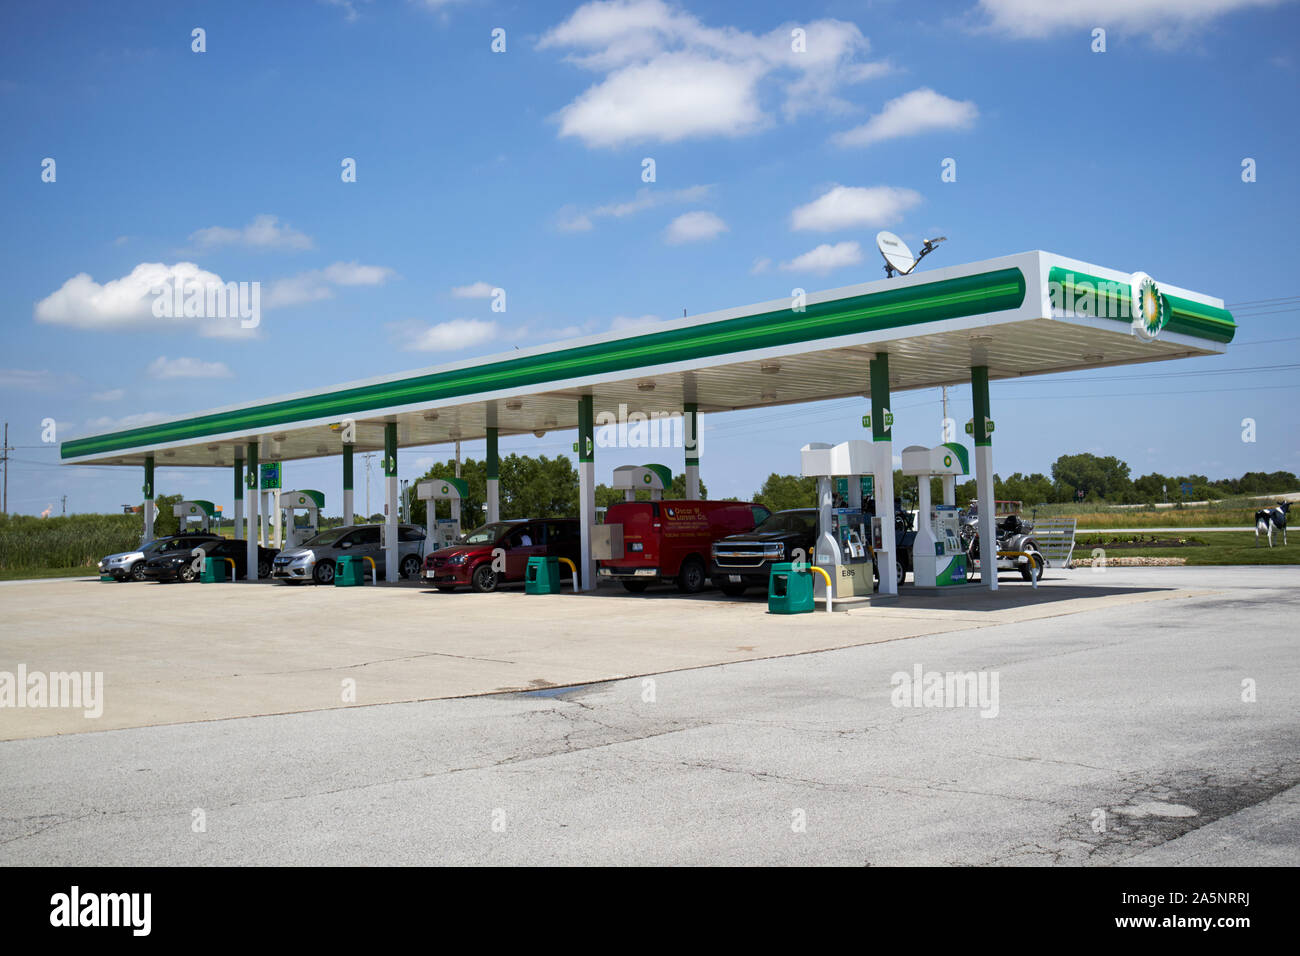 bp gas station in rural indiana USA Stock Photo